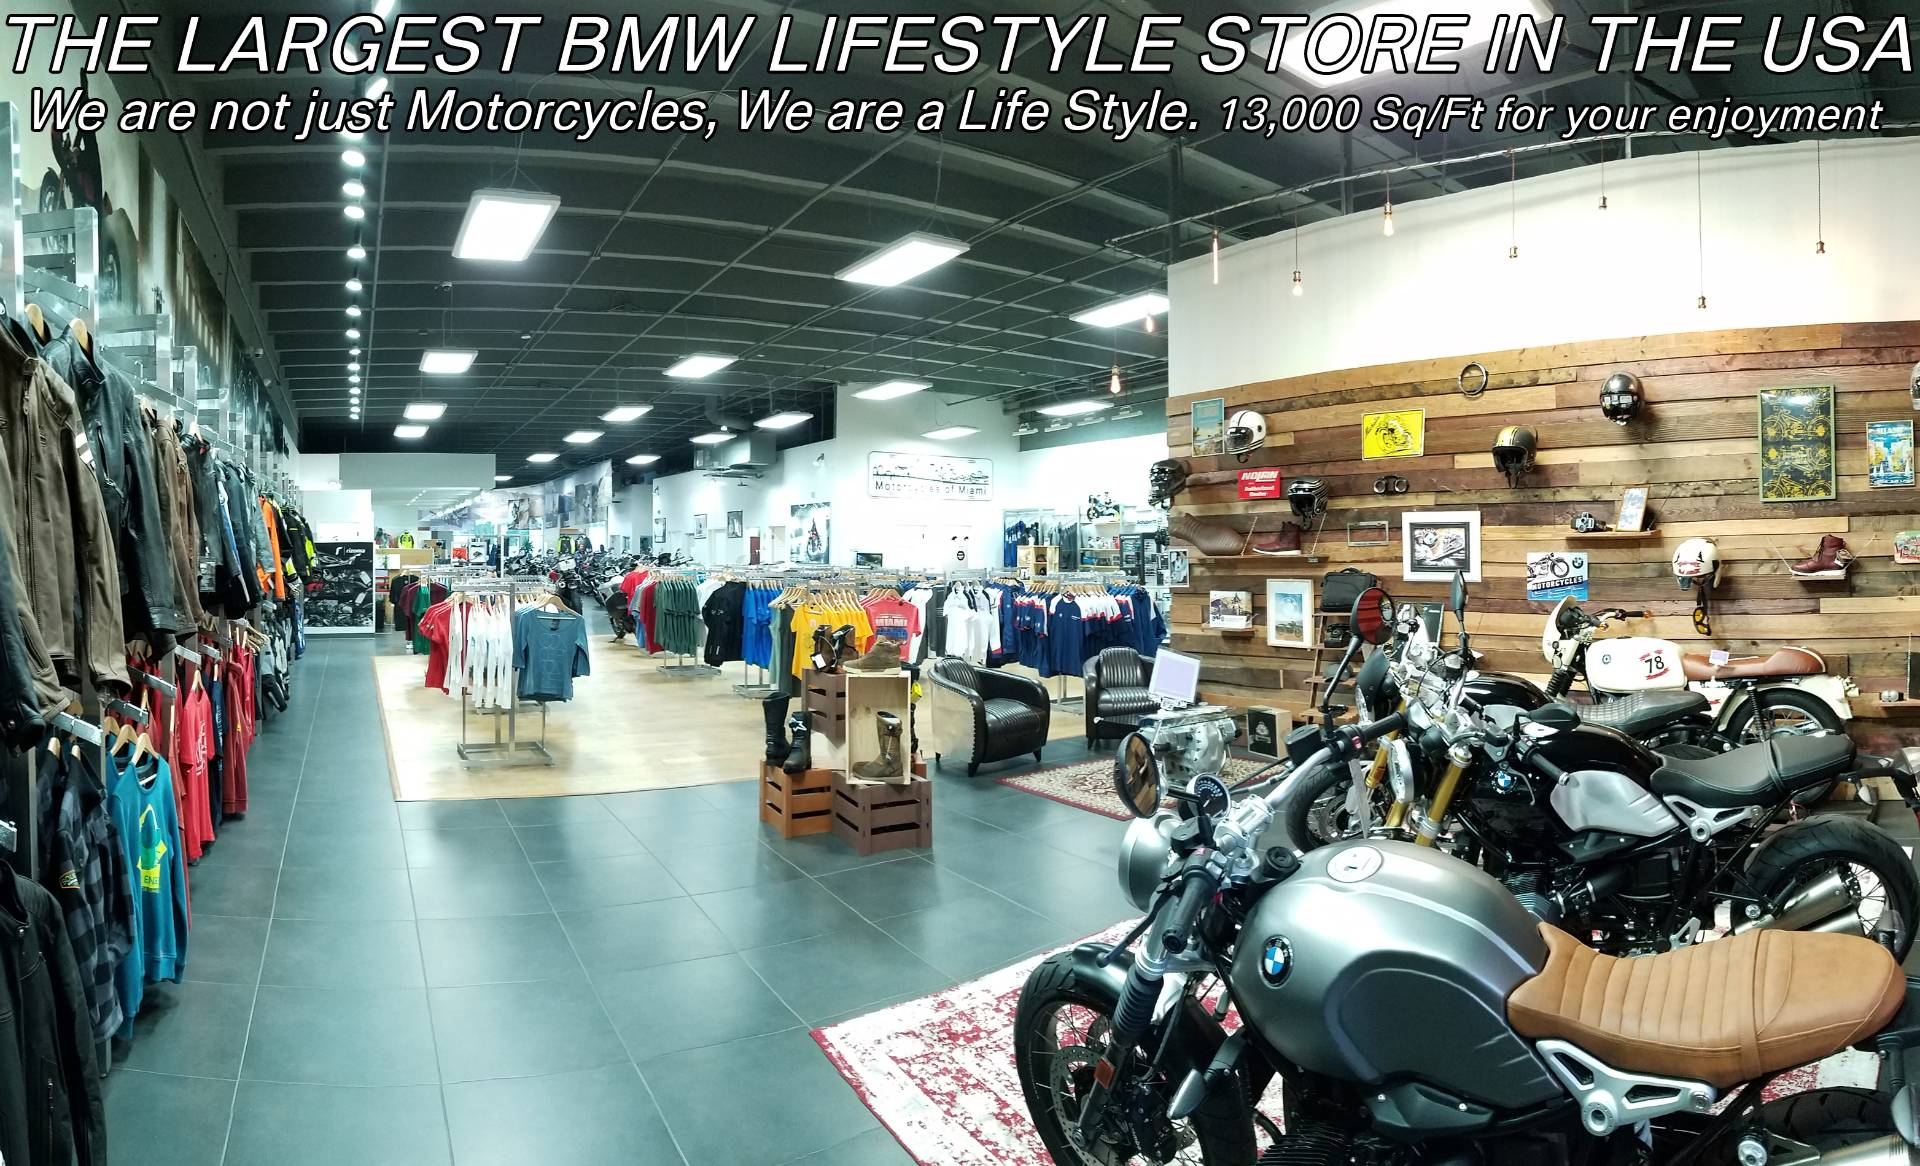 BMW Motorcycles of Miami, Motorcycles of Miami, Motorcycles Miami, New Motorcycles, Used Motorcycles, pre-owned. #BMWMotorcyclesOfMiami #MotorcyclesOfMiami. - Photo 13